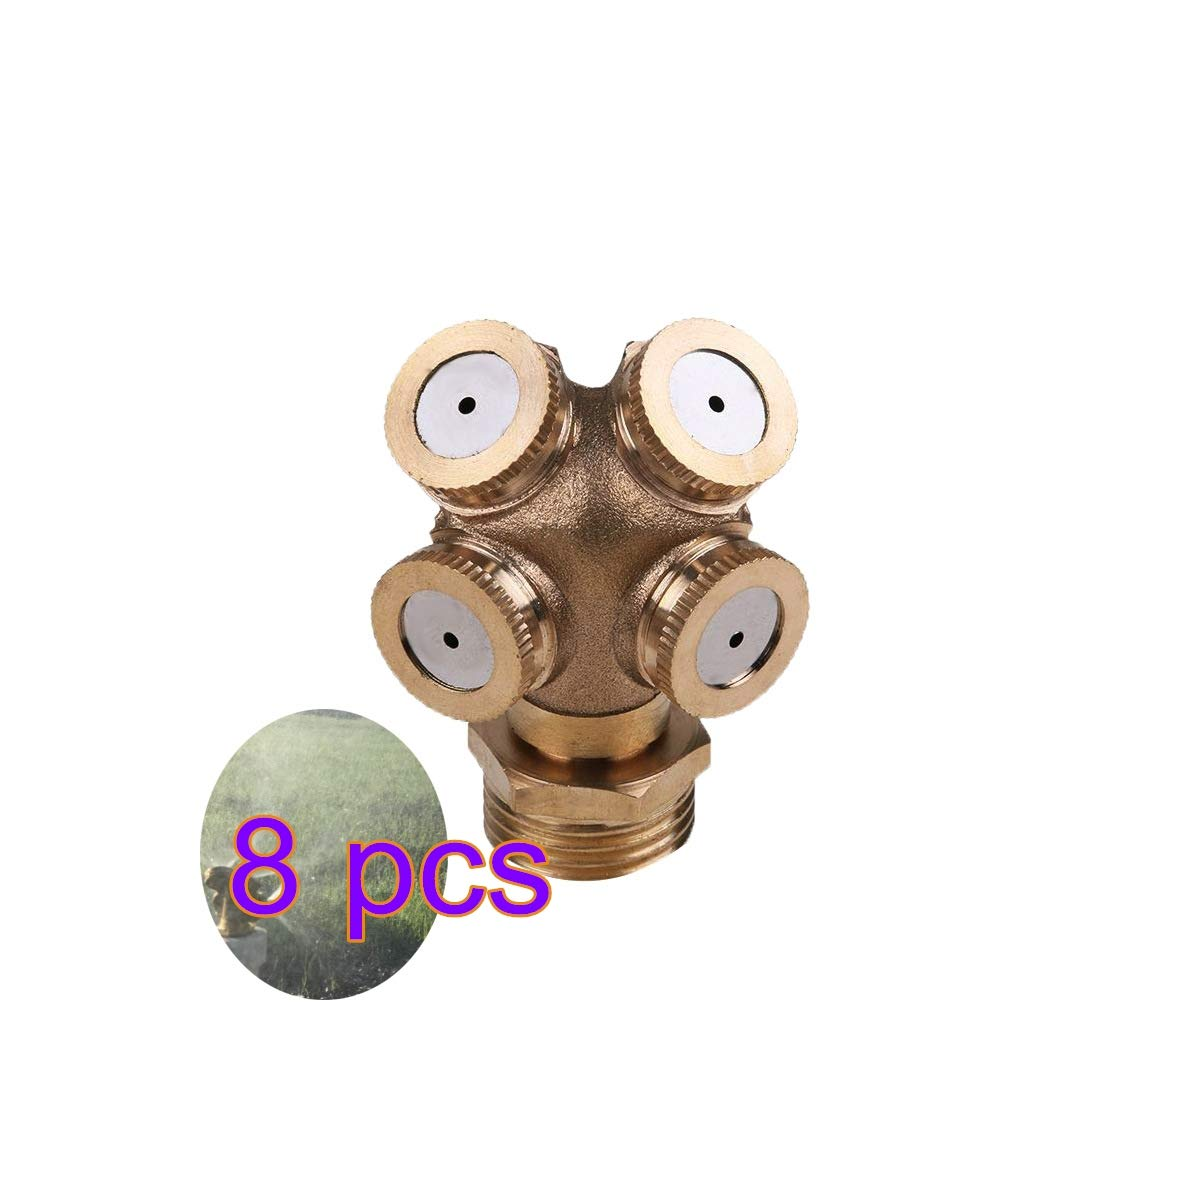 XINdream 4 Hole Brass Misting Nozzle, Adjustable Spray Irrigation Tools Garden Atomizing Sprinklers Agricultural Lawn Supplies (4/6/8 PCS Spray Nozzle Choose)